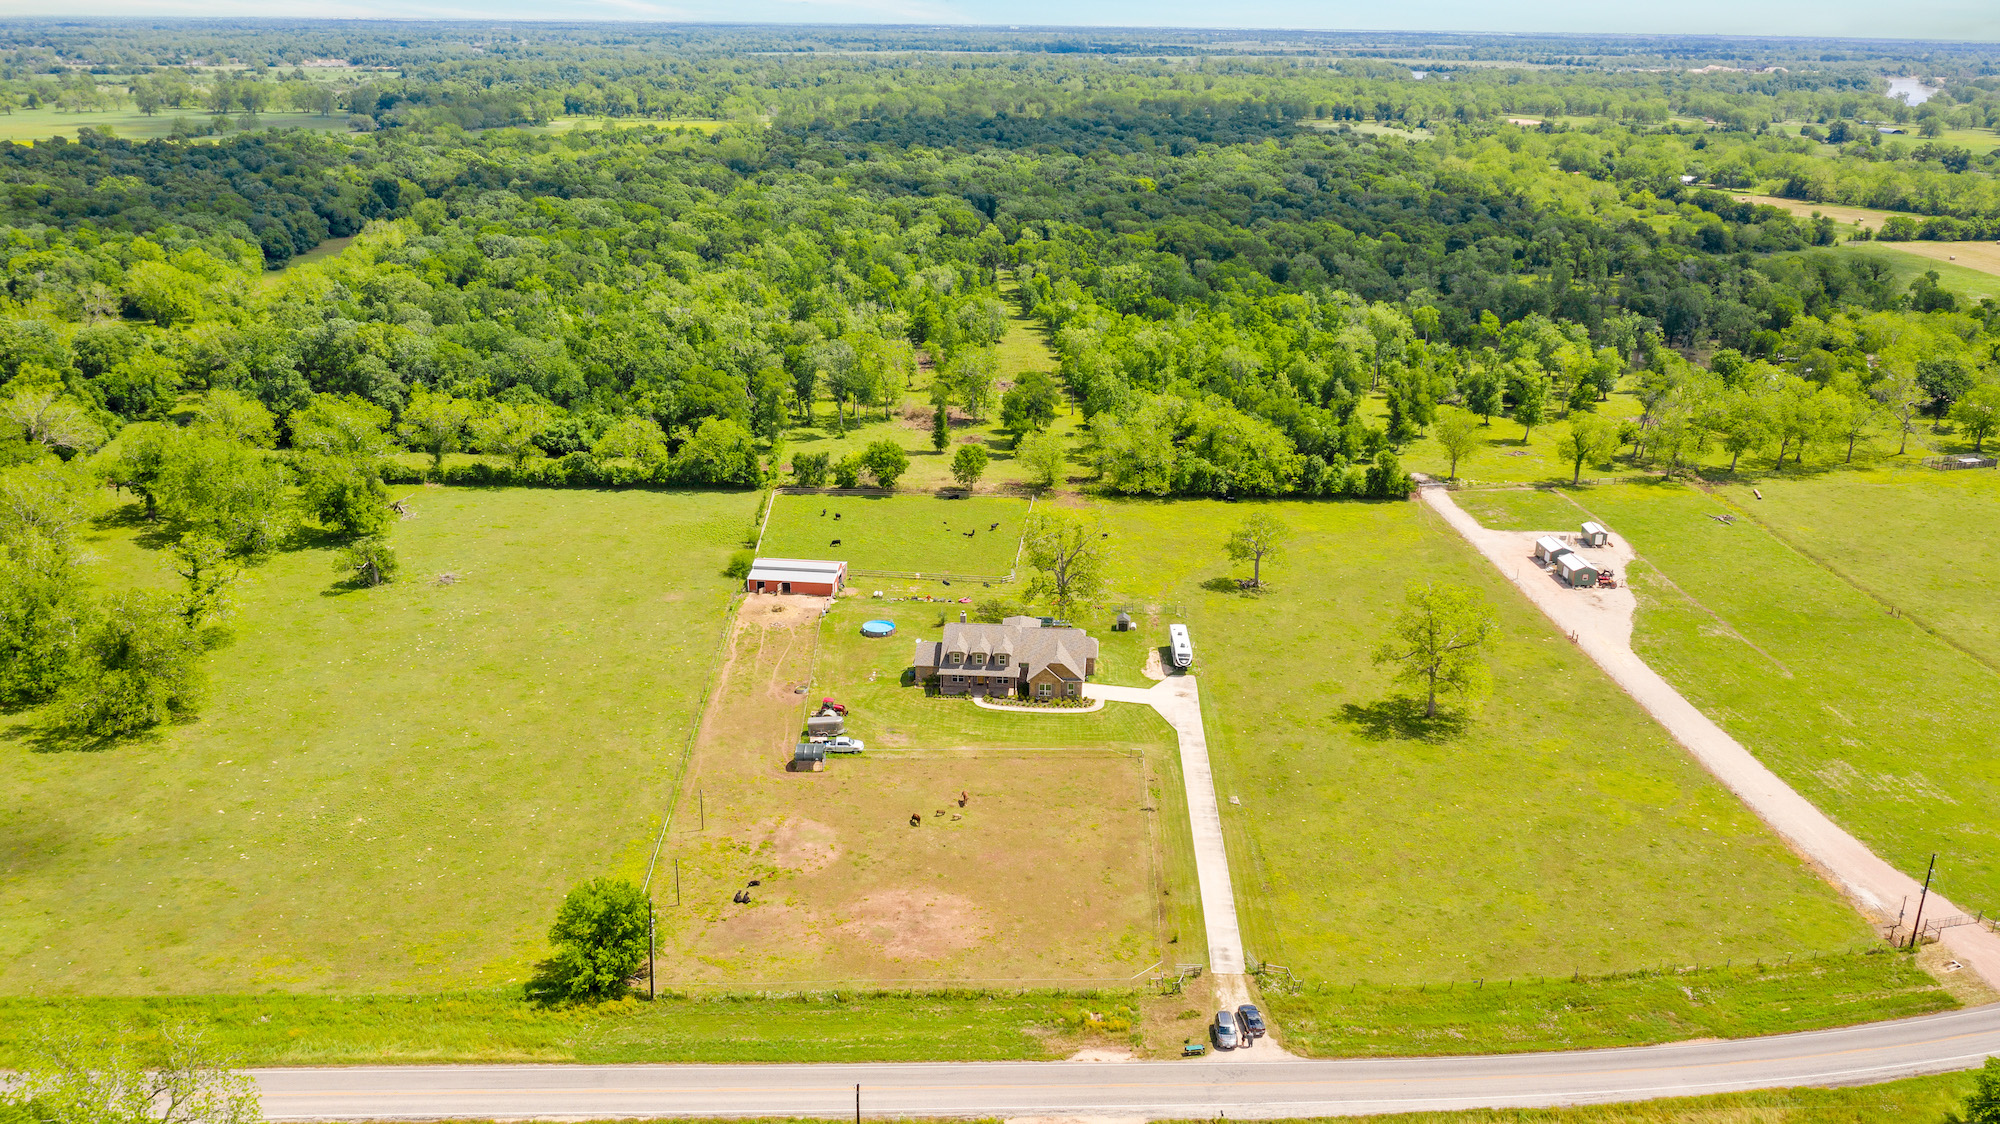 Custom Country Home with Acreage in Sealy - Image 5 of 46